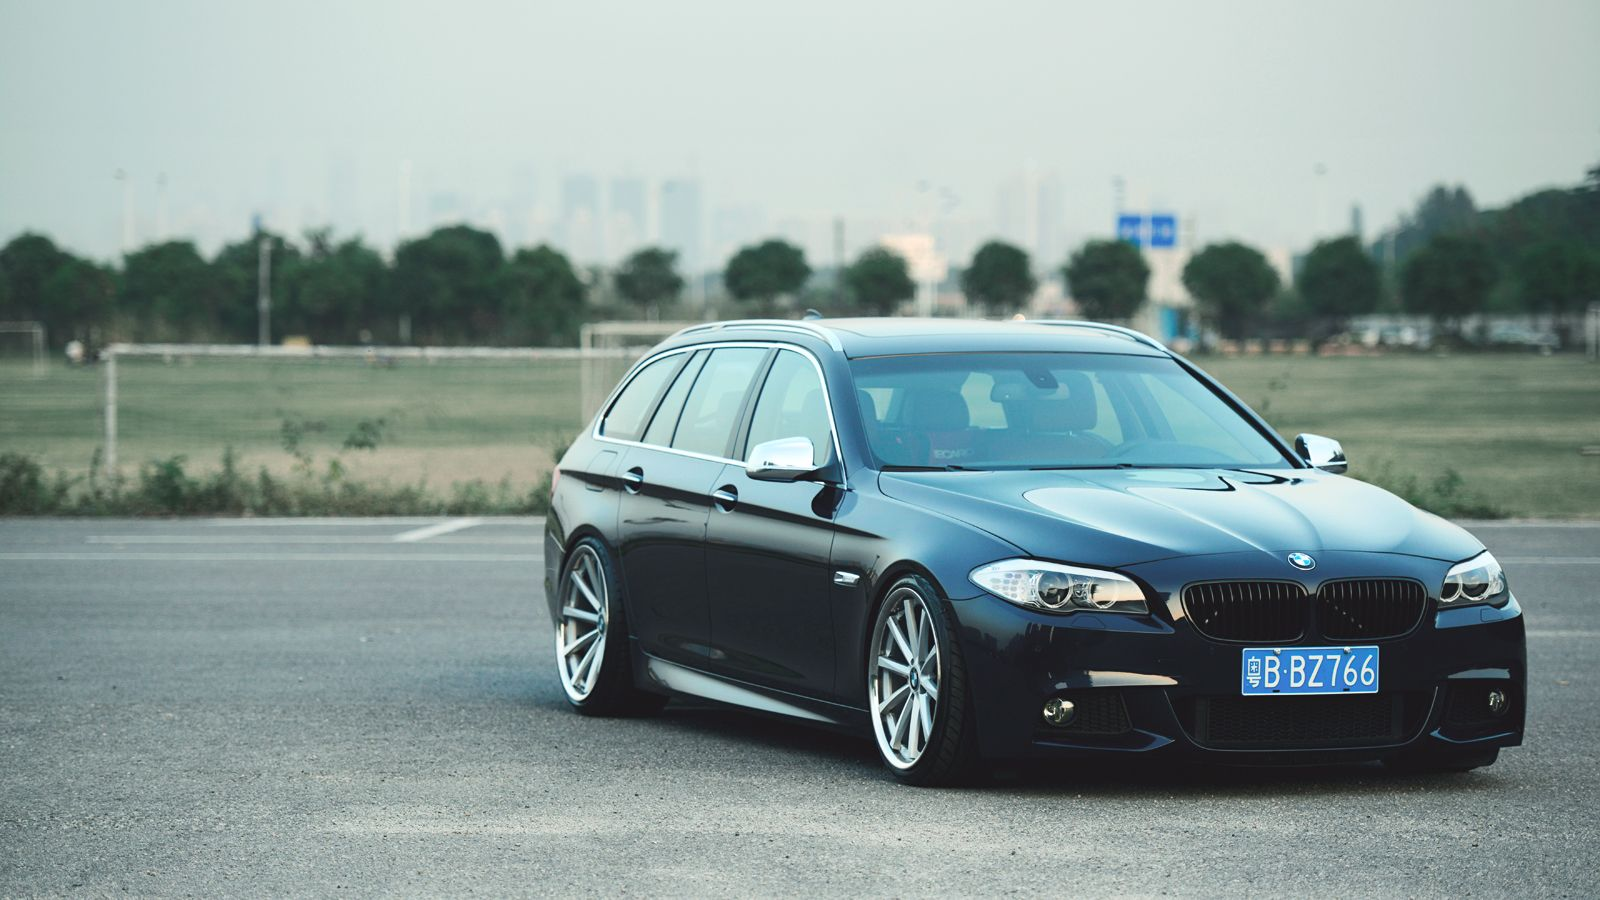 F11 alpina b5 biturbo touring page 2 5series net forums - My New F11 530i Touring Stanceworks Bmw Pinterest Bmw Vossen Wheels And Wheels